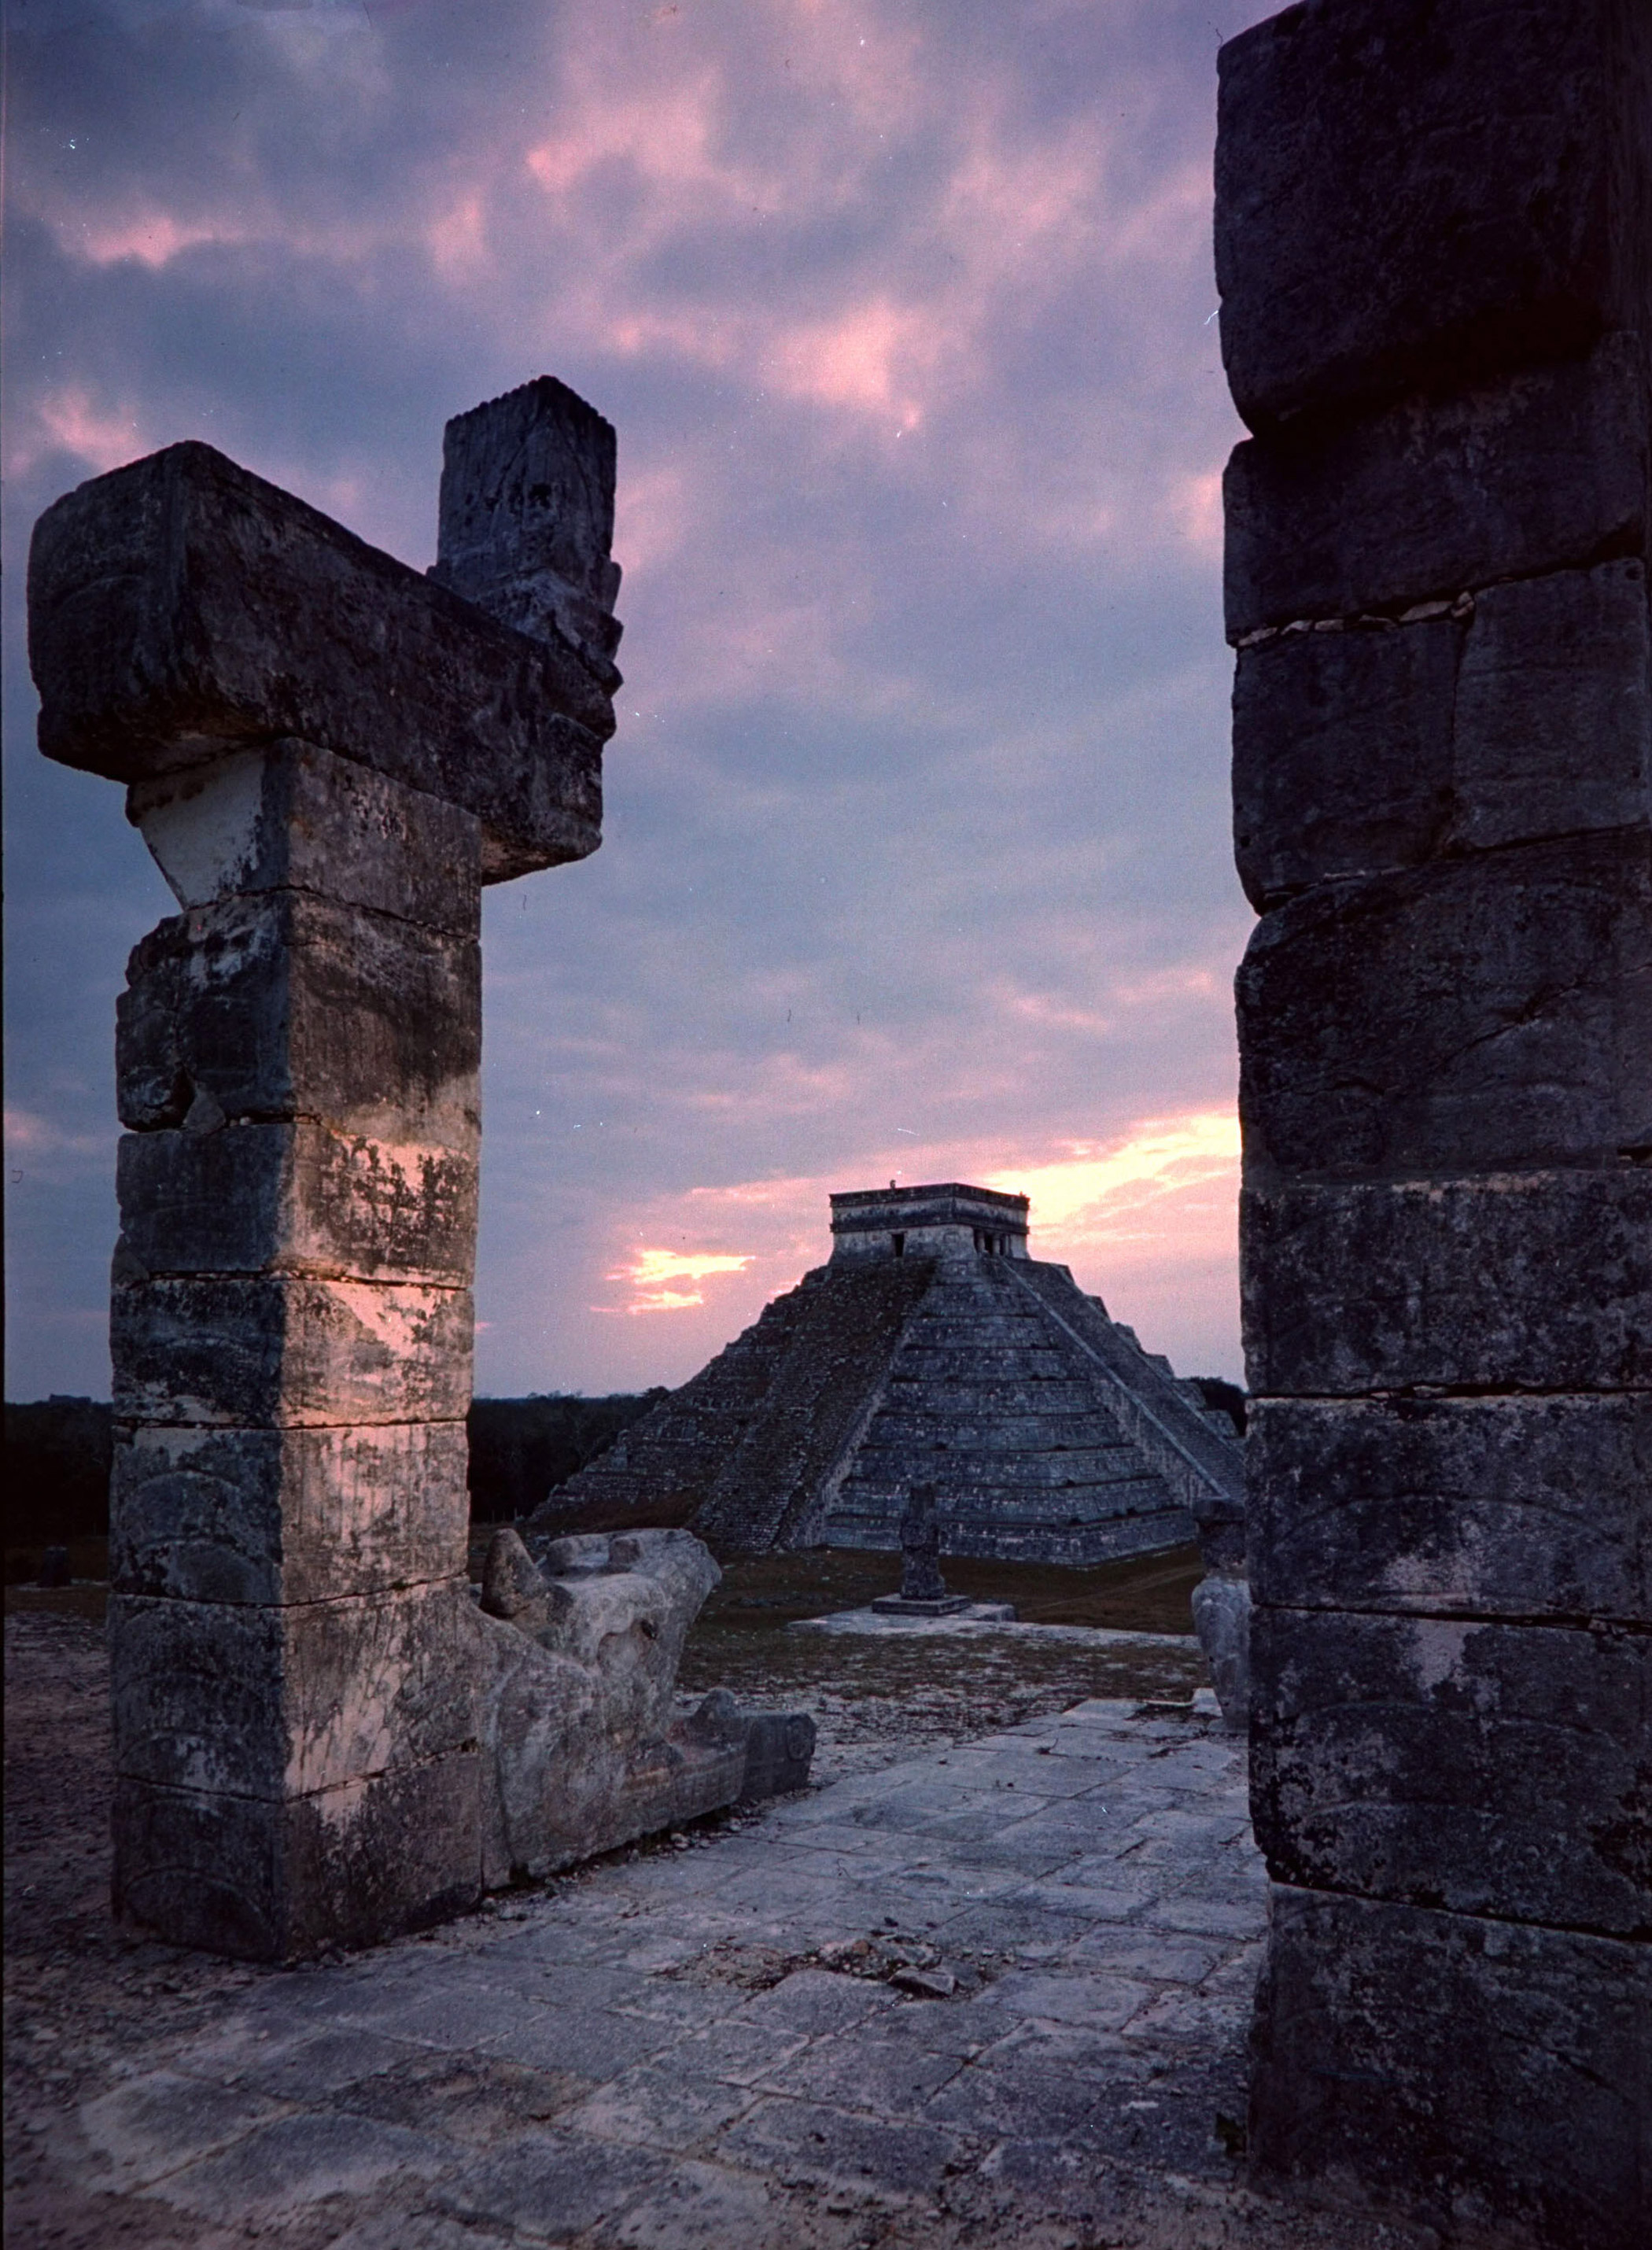 Ancient Mayan city of Chichen Itza built by Mayans in 6th century dedicated to a godlike leader, Kukulcan.